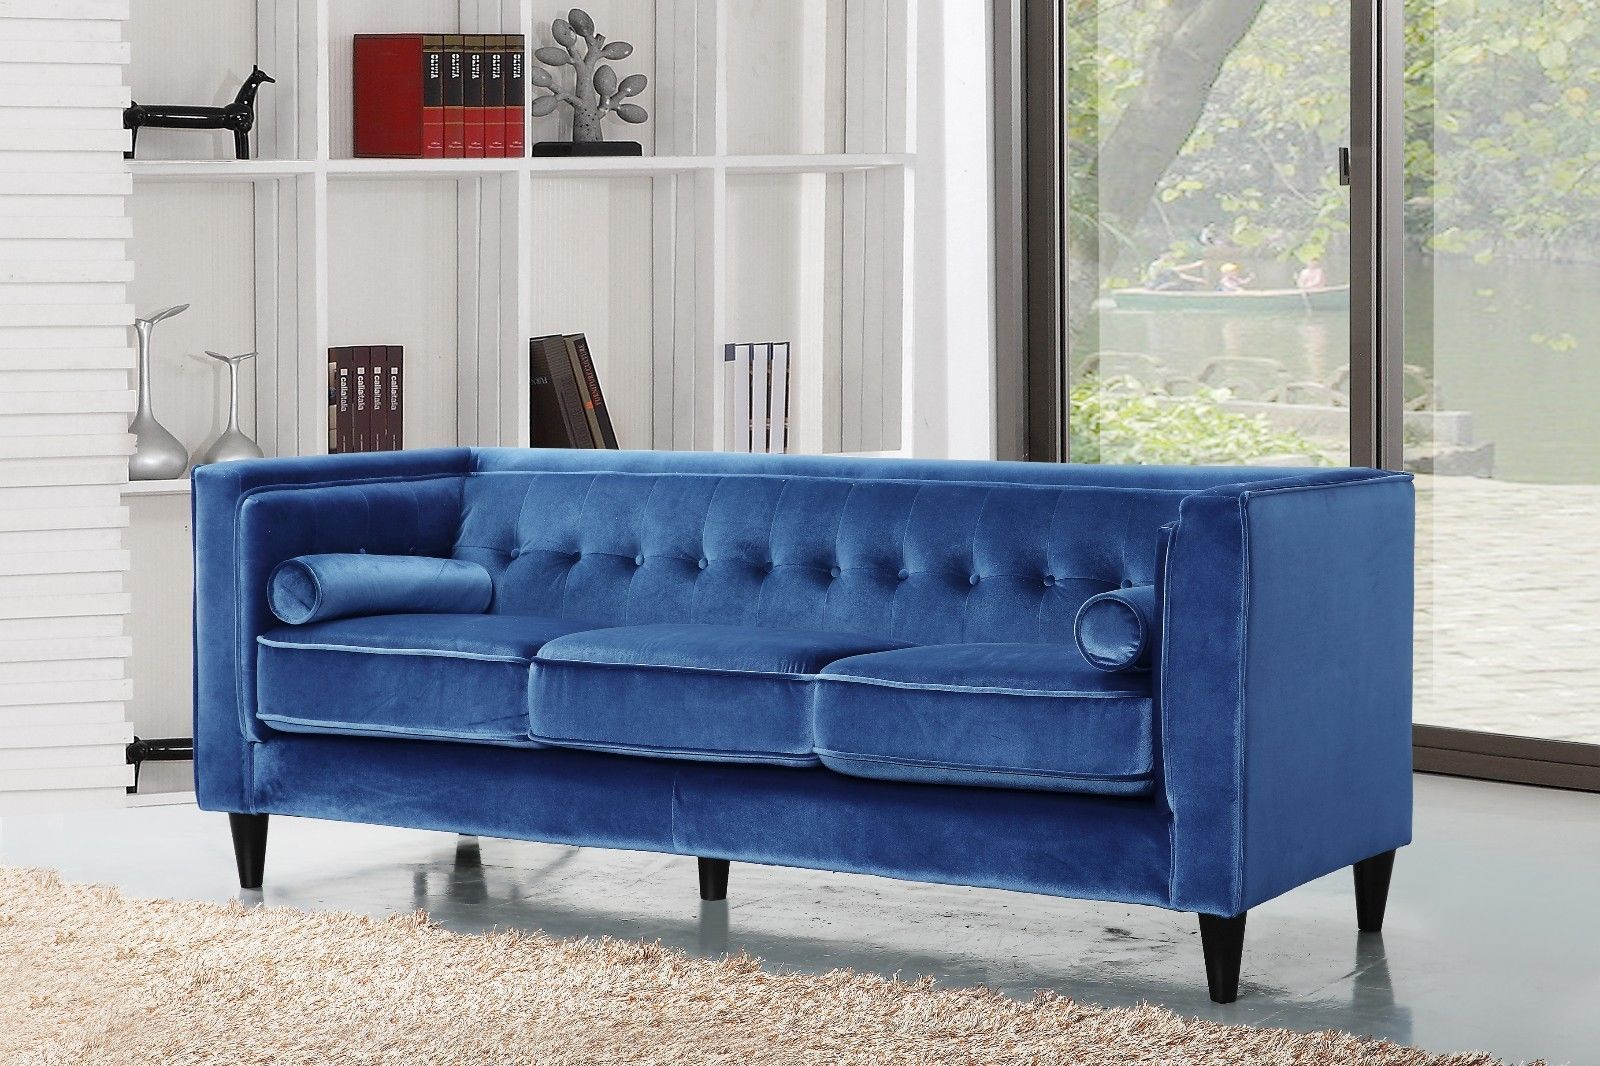 Meridian 642 Taylor Living Room Set 2pcs in Light Blue Velvet Contemporary Style